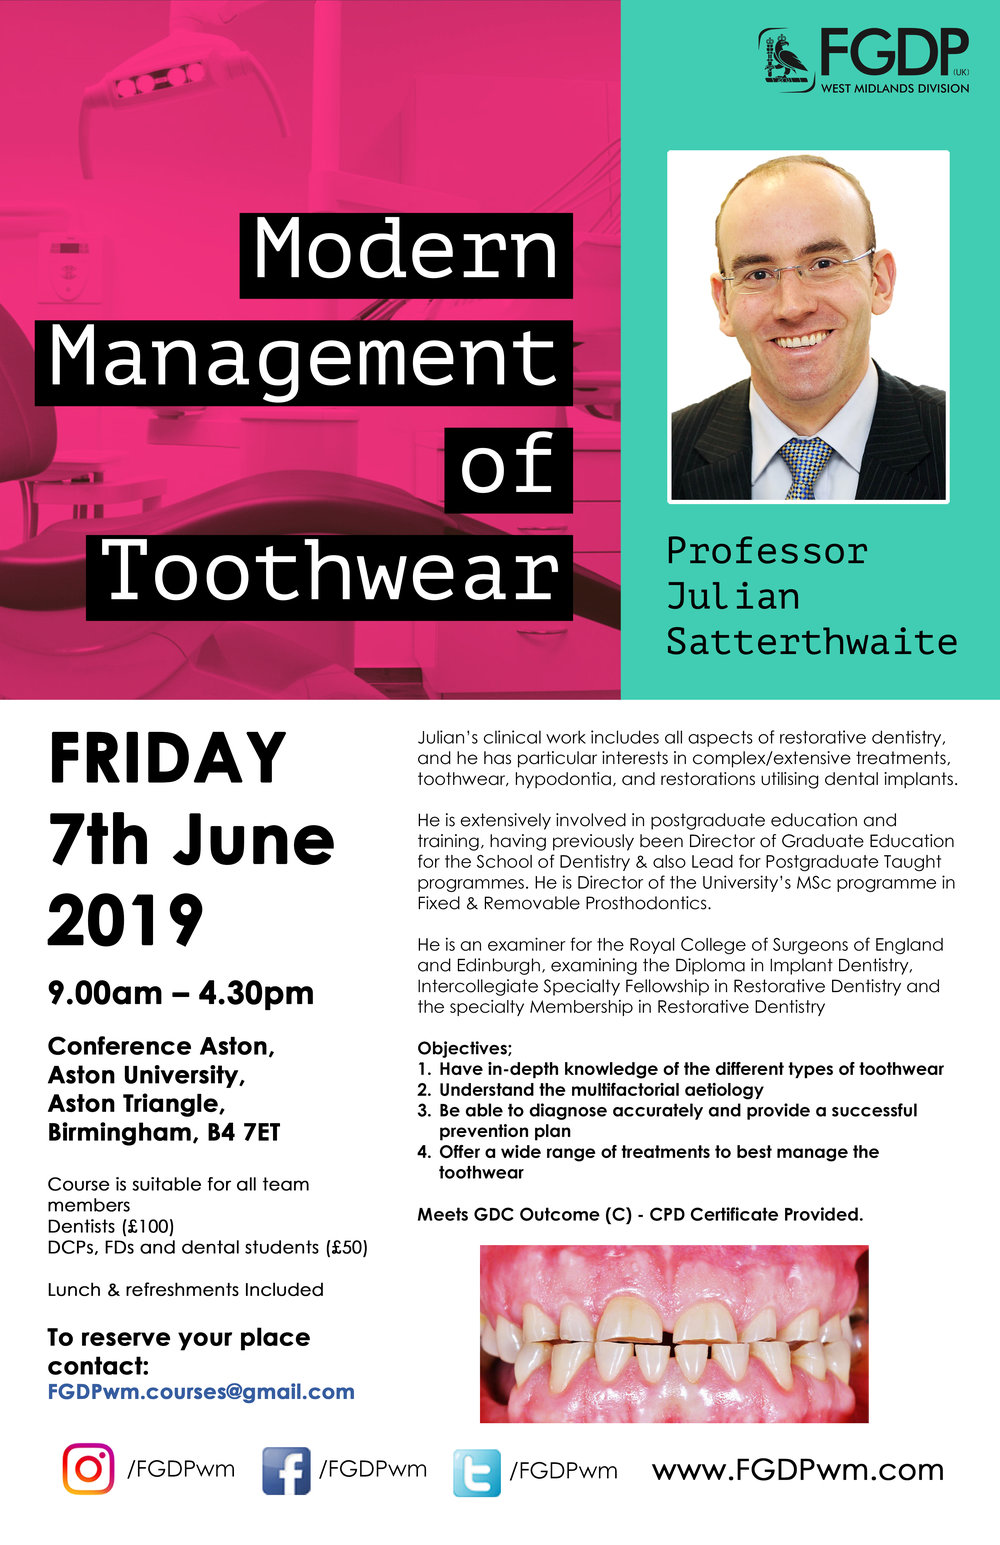 Modern Management of Toothwear v3.jpg